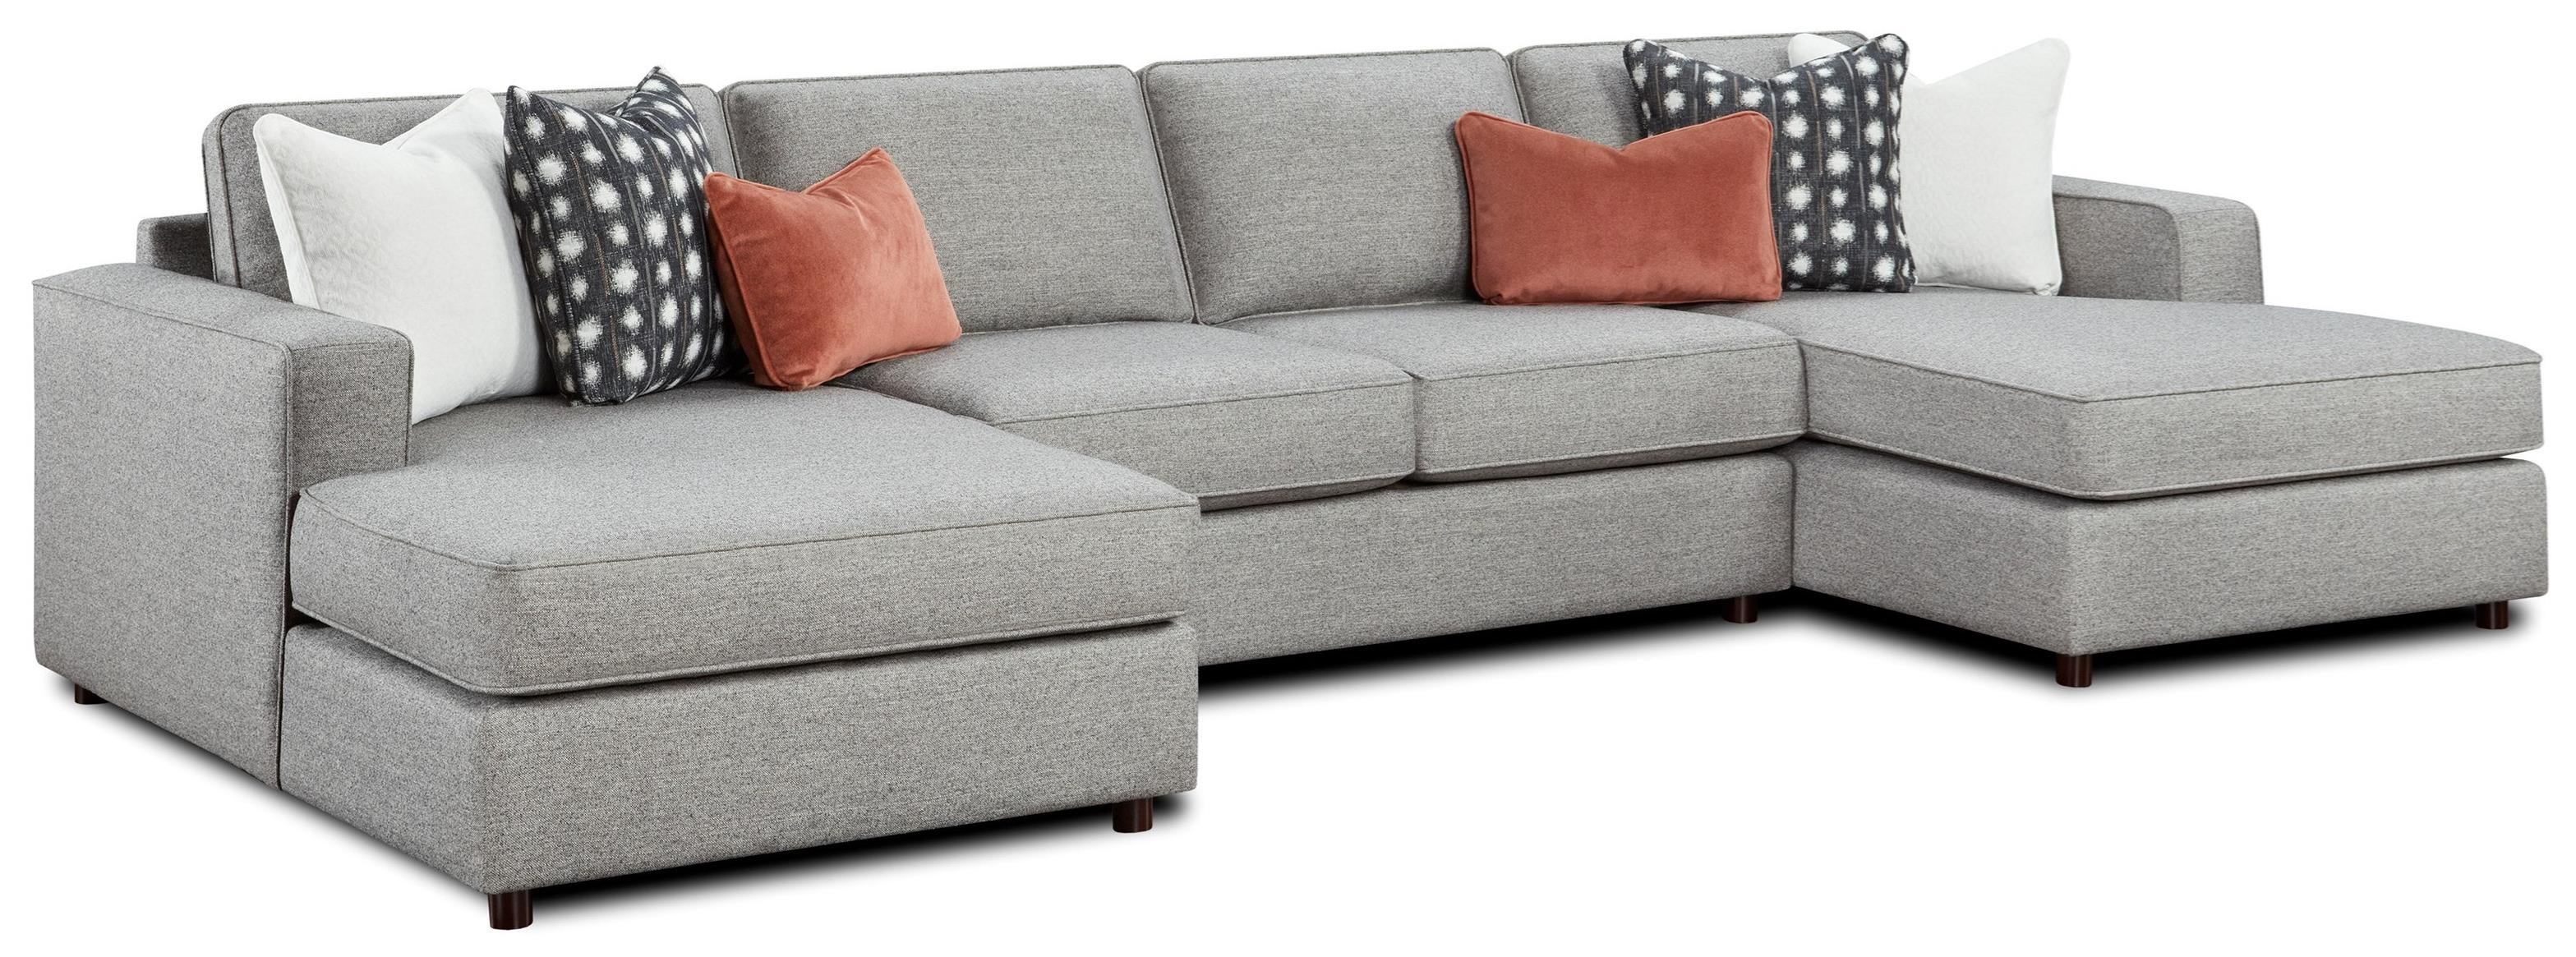 2061 3-Piece Dual Chaise Sectional by Fusion Furniture at Miller Waldrop Furniture and Decor